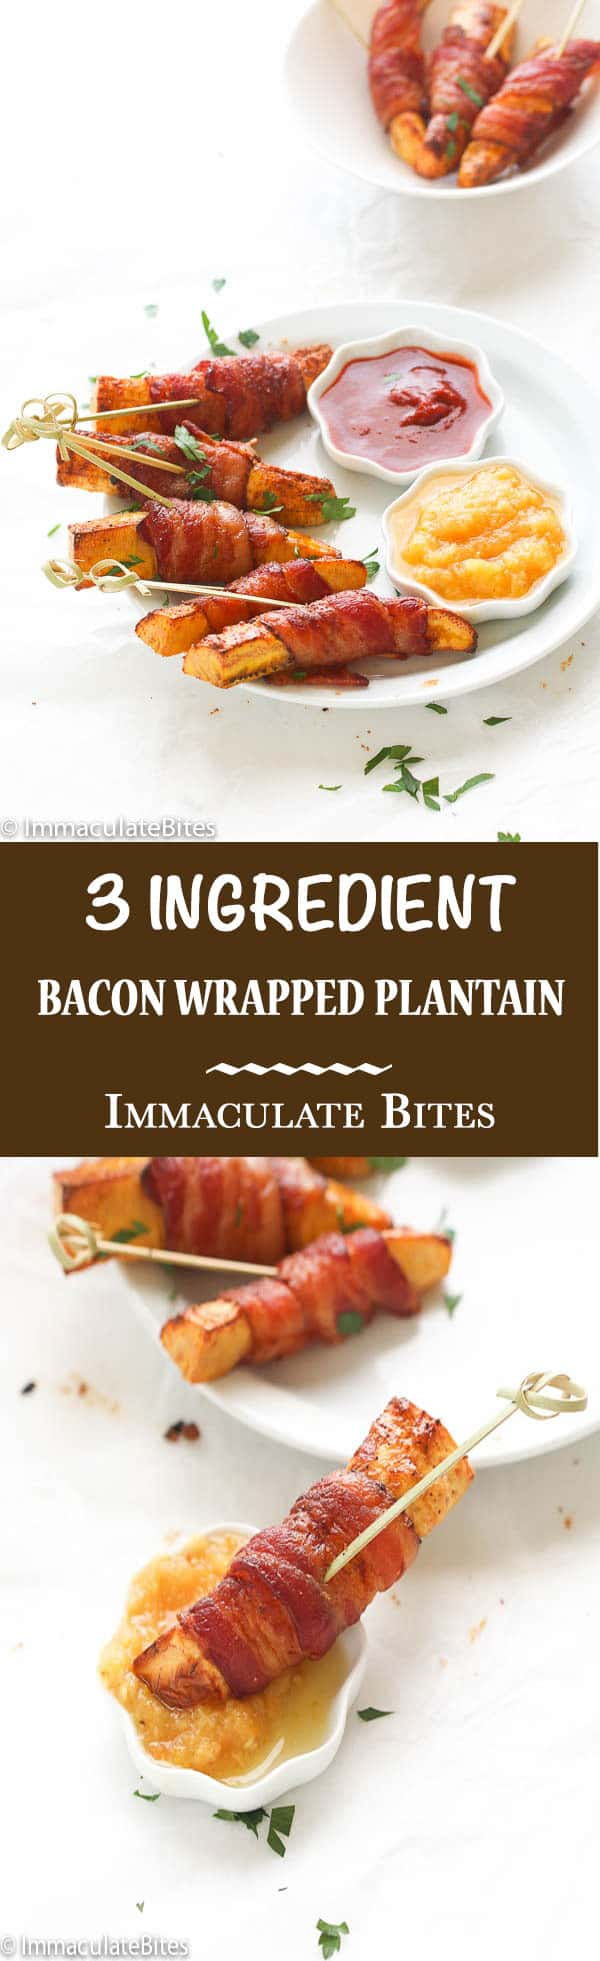 acon wrapped plantain- Plantain with a touch of heat, wrapped with bacon and sprinkled with spice. Easy, yet delicious appetizer, snack and/or breakfast.